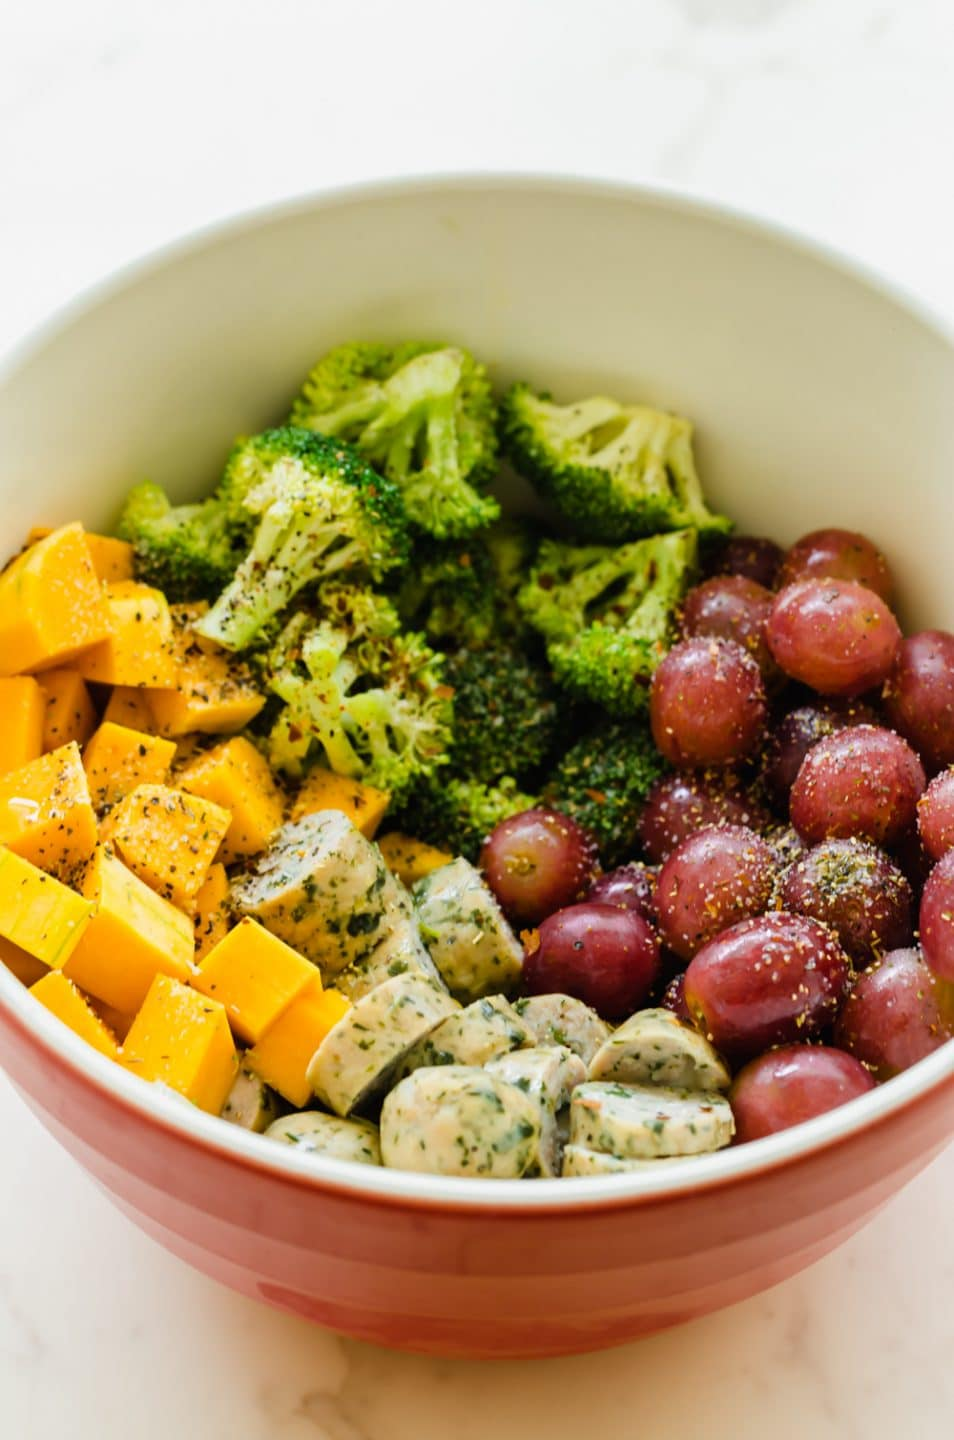 A large bowl filled with cut broccoli florets, cubed butternut squash, red grapes, and chicken sausage.